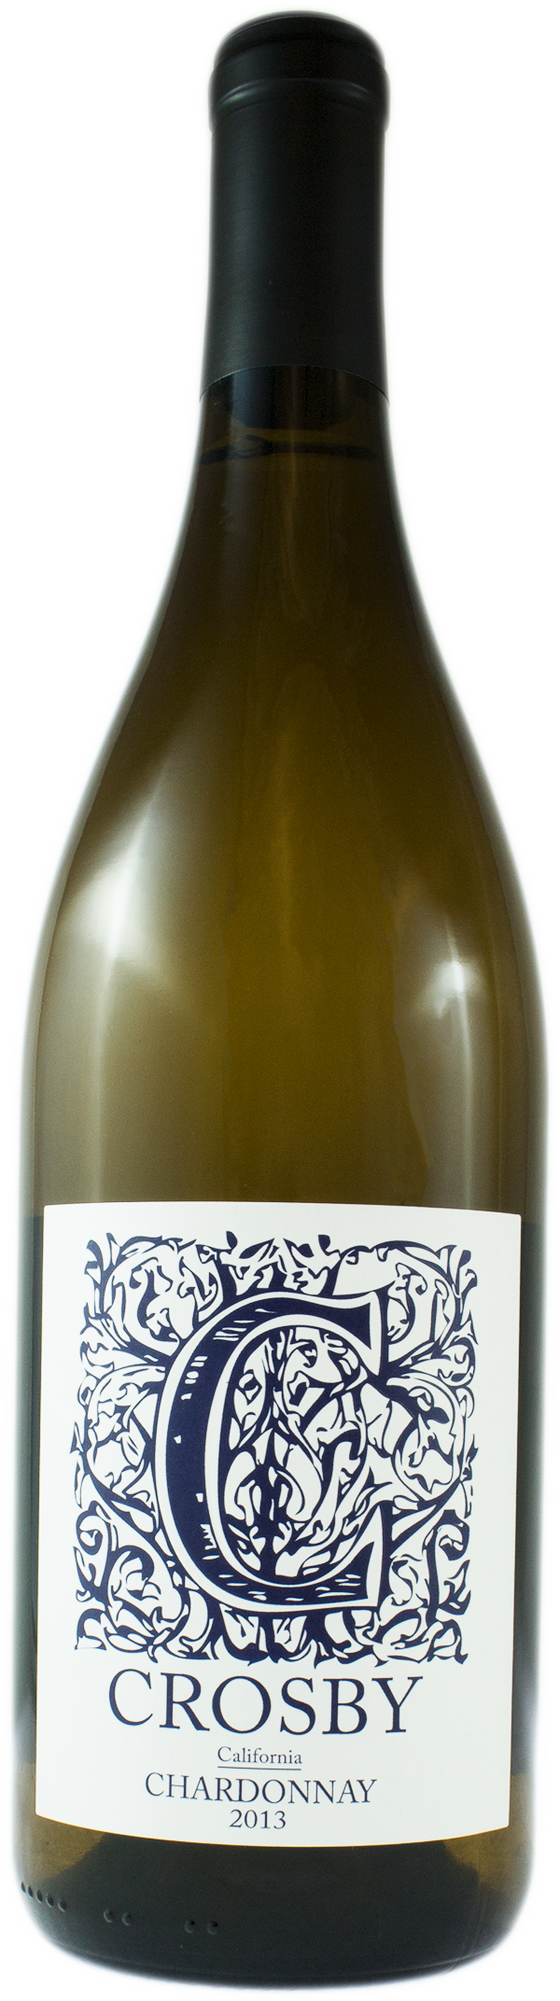 Crosby Chardonnay 2016, California